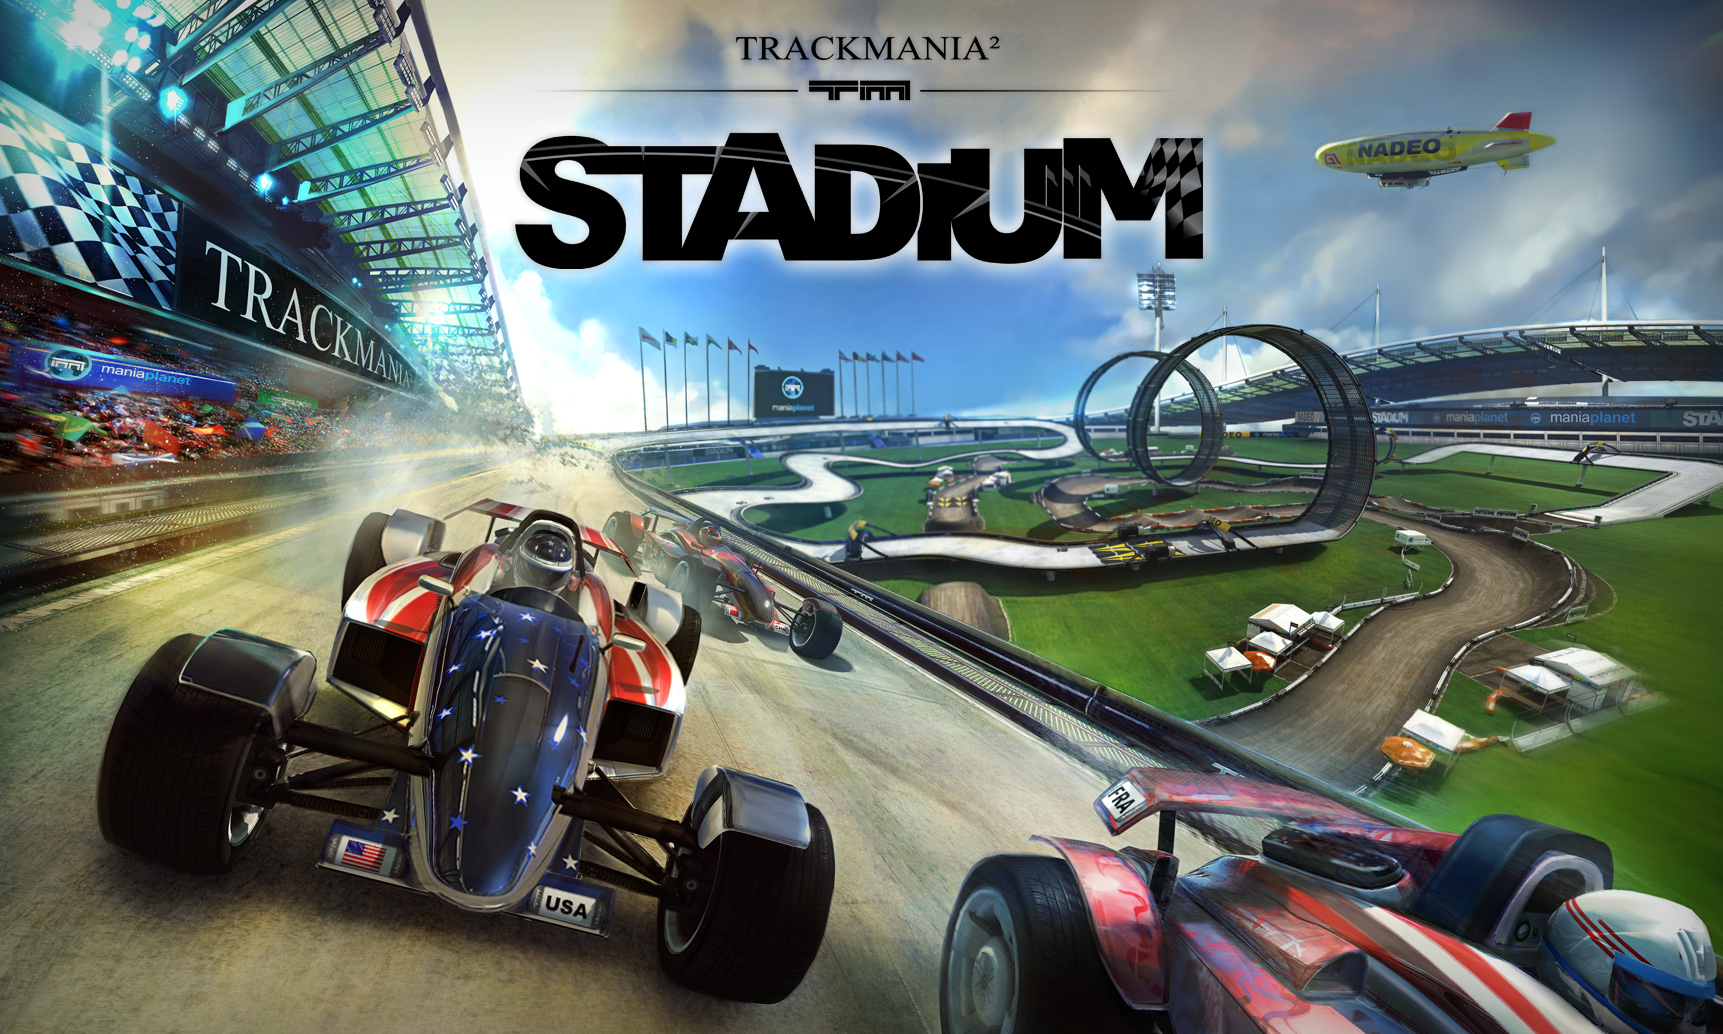 http://theworldwentaway.files.wordpress.com/2012/11/trackmania-2-stadium.jpg